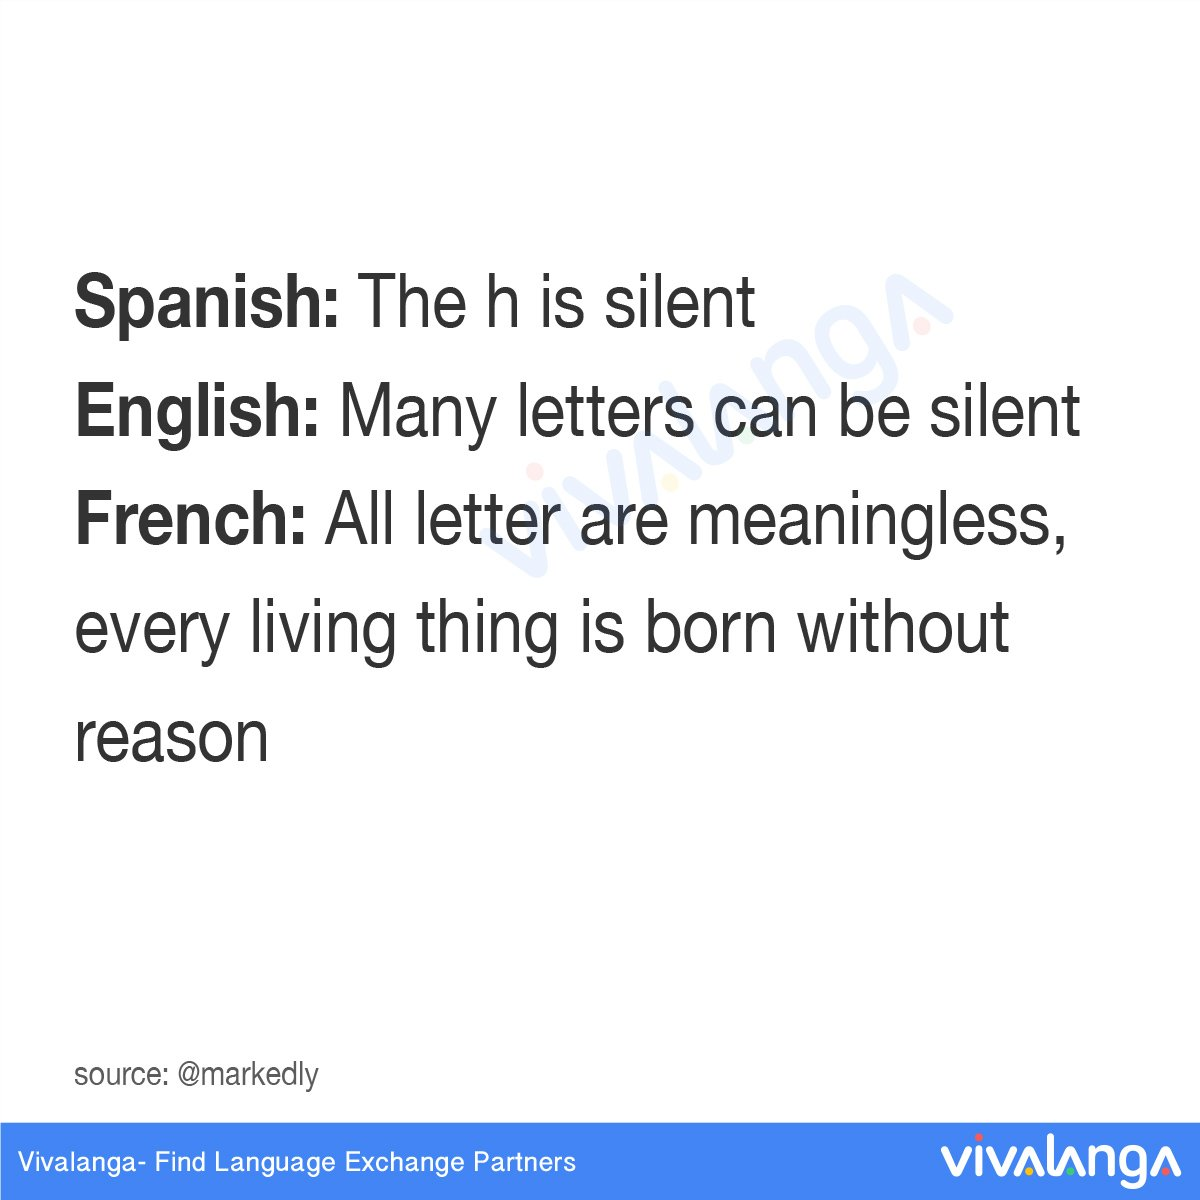 Vivalanga On Twitter Spanish The H Is Silent English Many Letters Are French All Letter Meaningless Every Living Thing Born Without